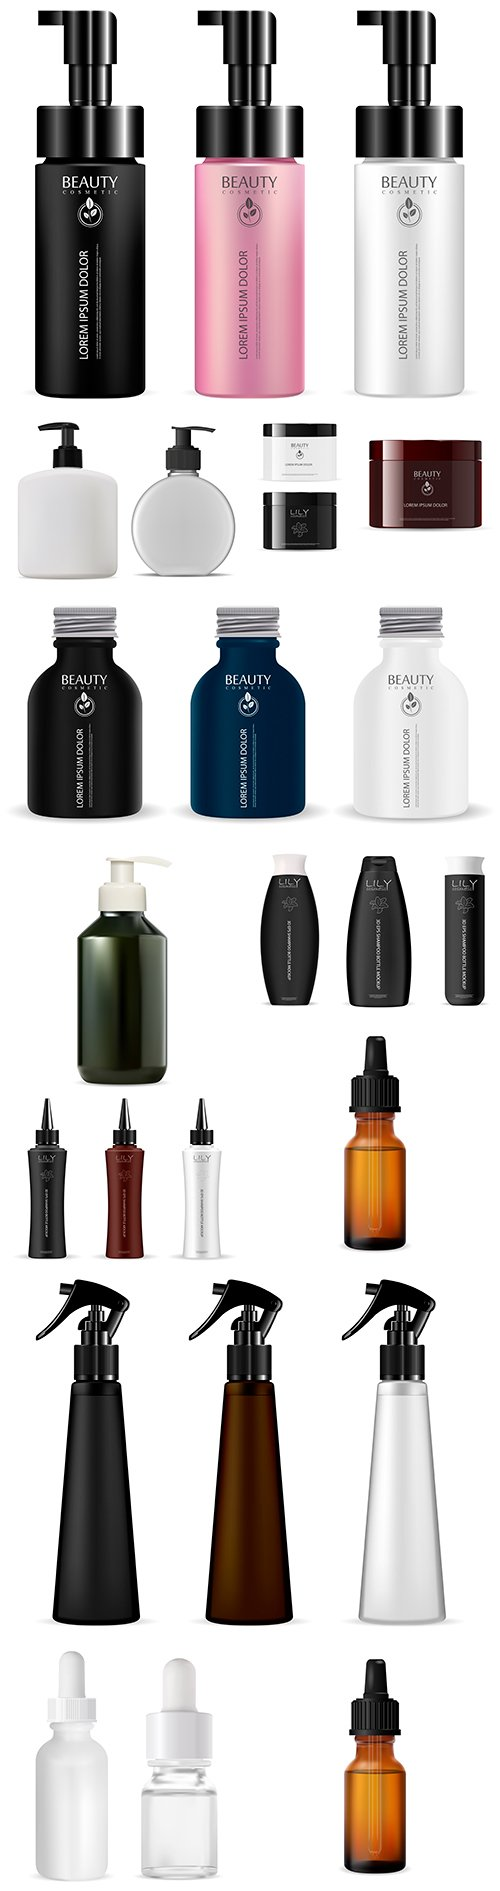 Beauty cosmetic vials and packaging for cosmetics